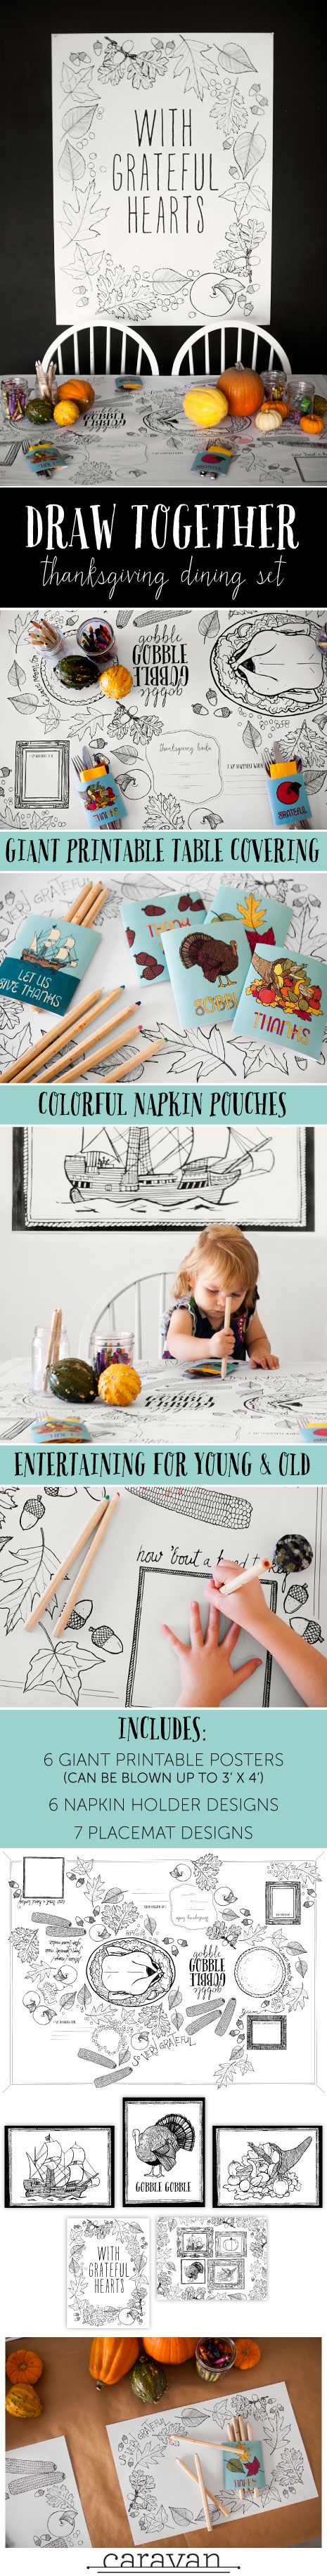 Easy printable Thanksgiving table decor. Works great for kids' table AND for grown-ups too!: